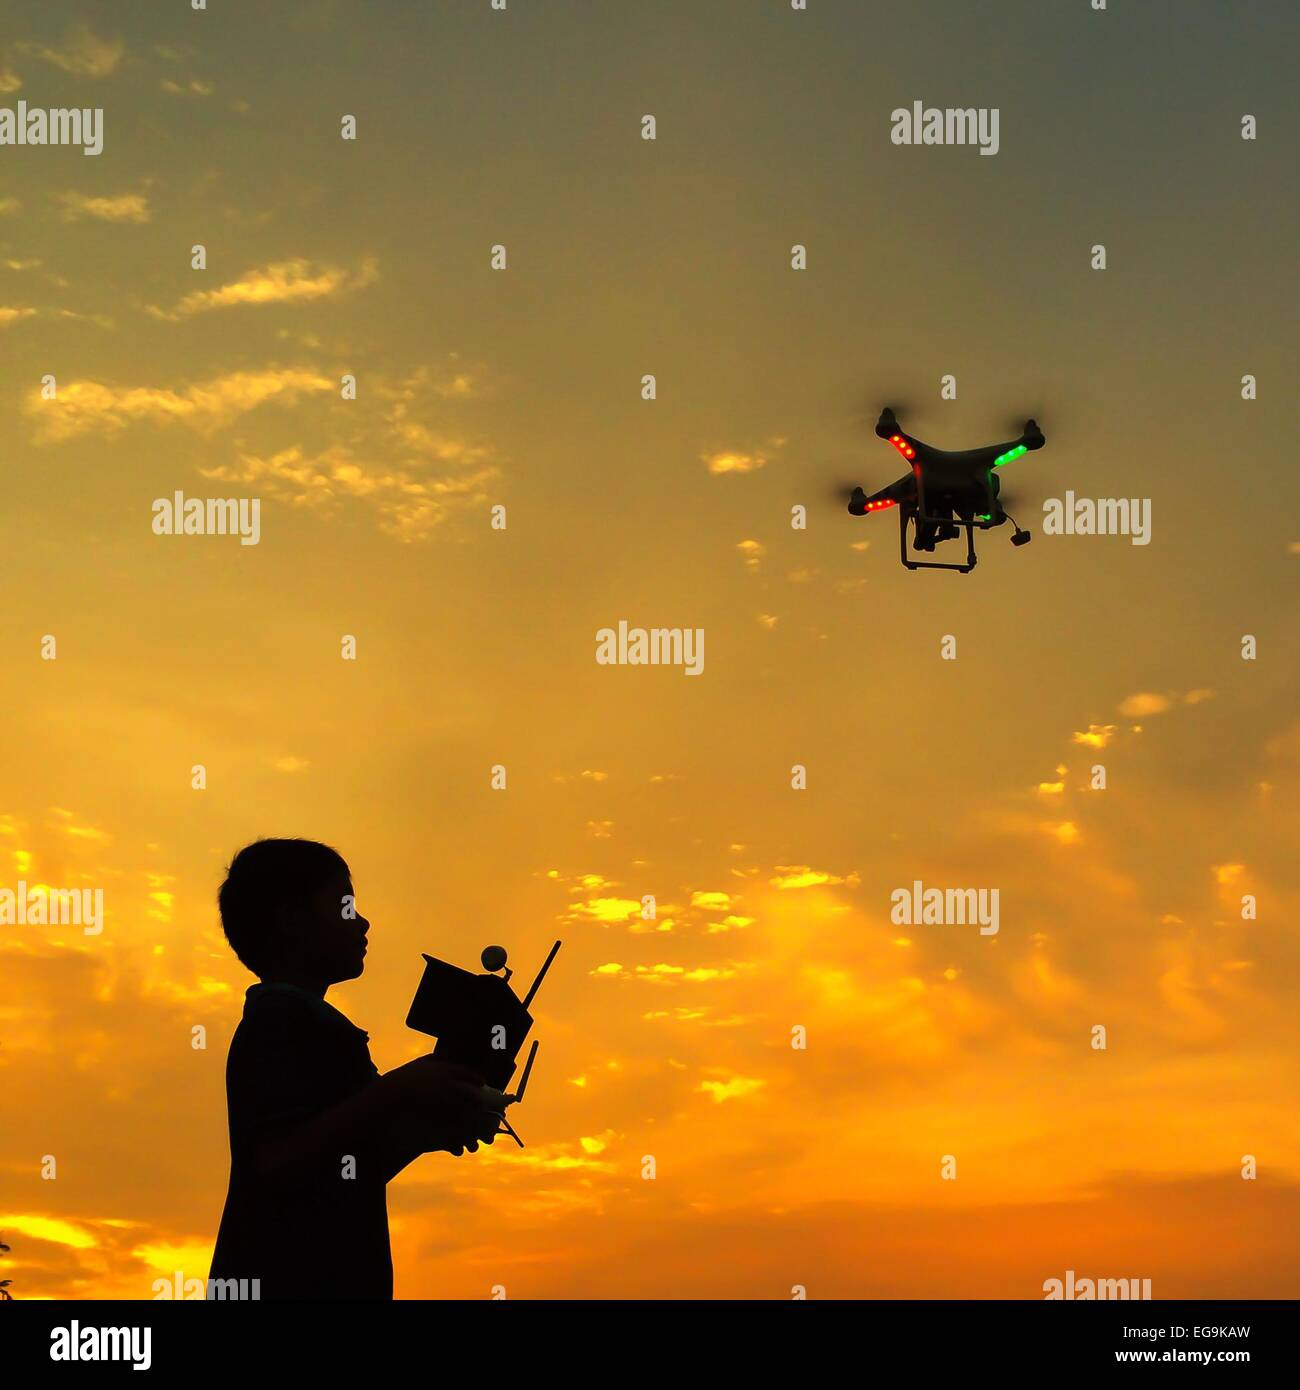 Silhouette of boy Flying a drone at sunset - Stock Image